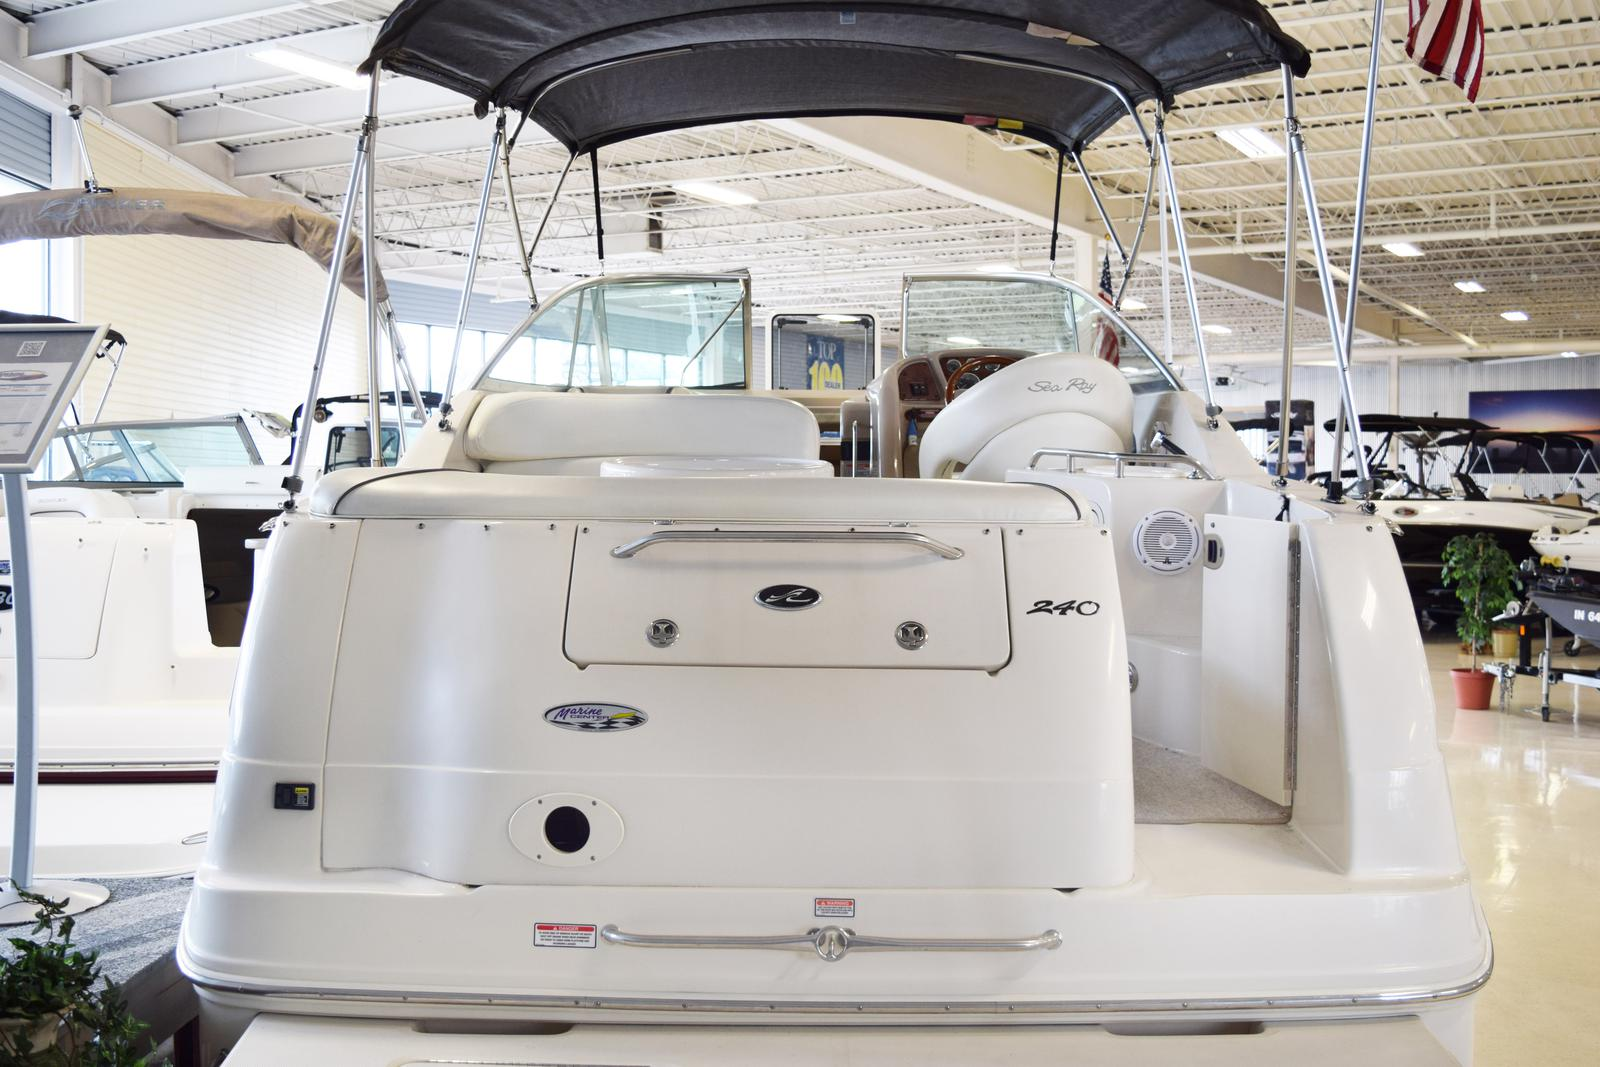 2004 Sea Ray 240 Sundancer for sale in Indianapolis, IN